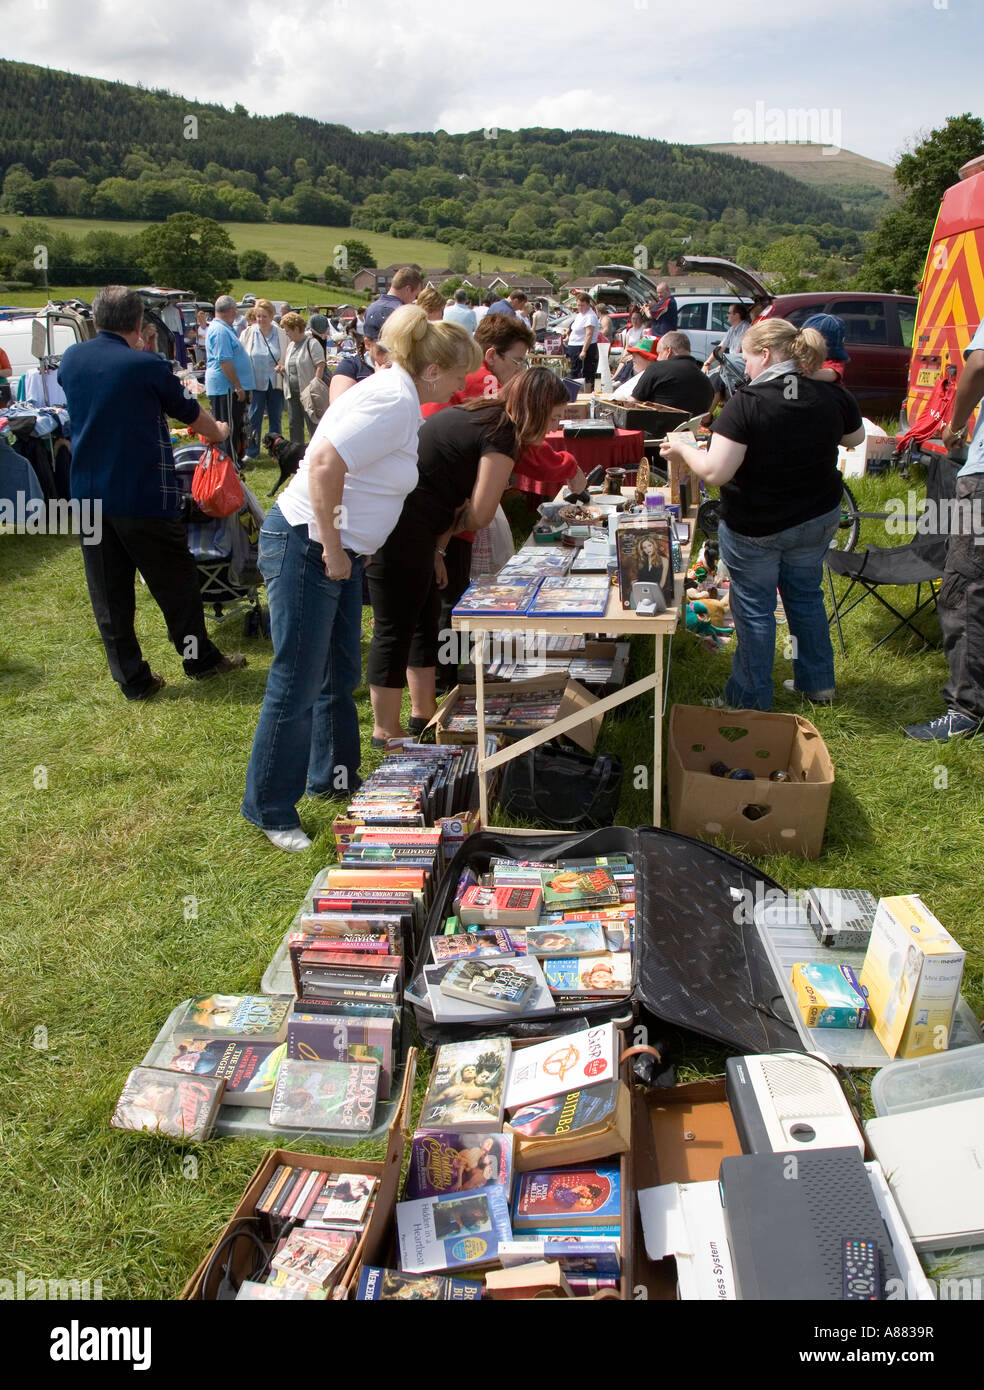 Books and household goods on display at car boot sale Wales UK - Stock Image